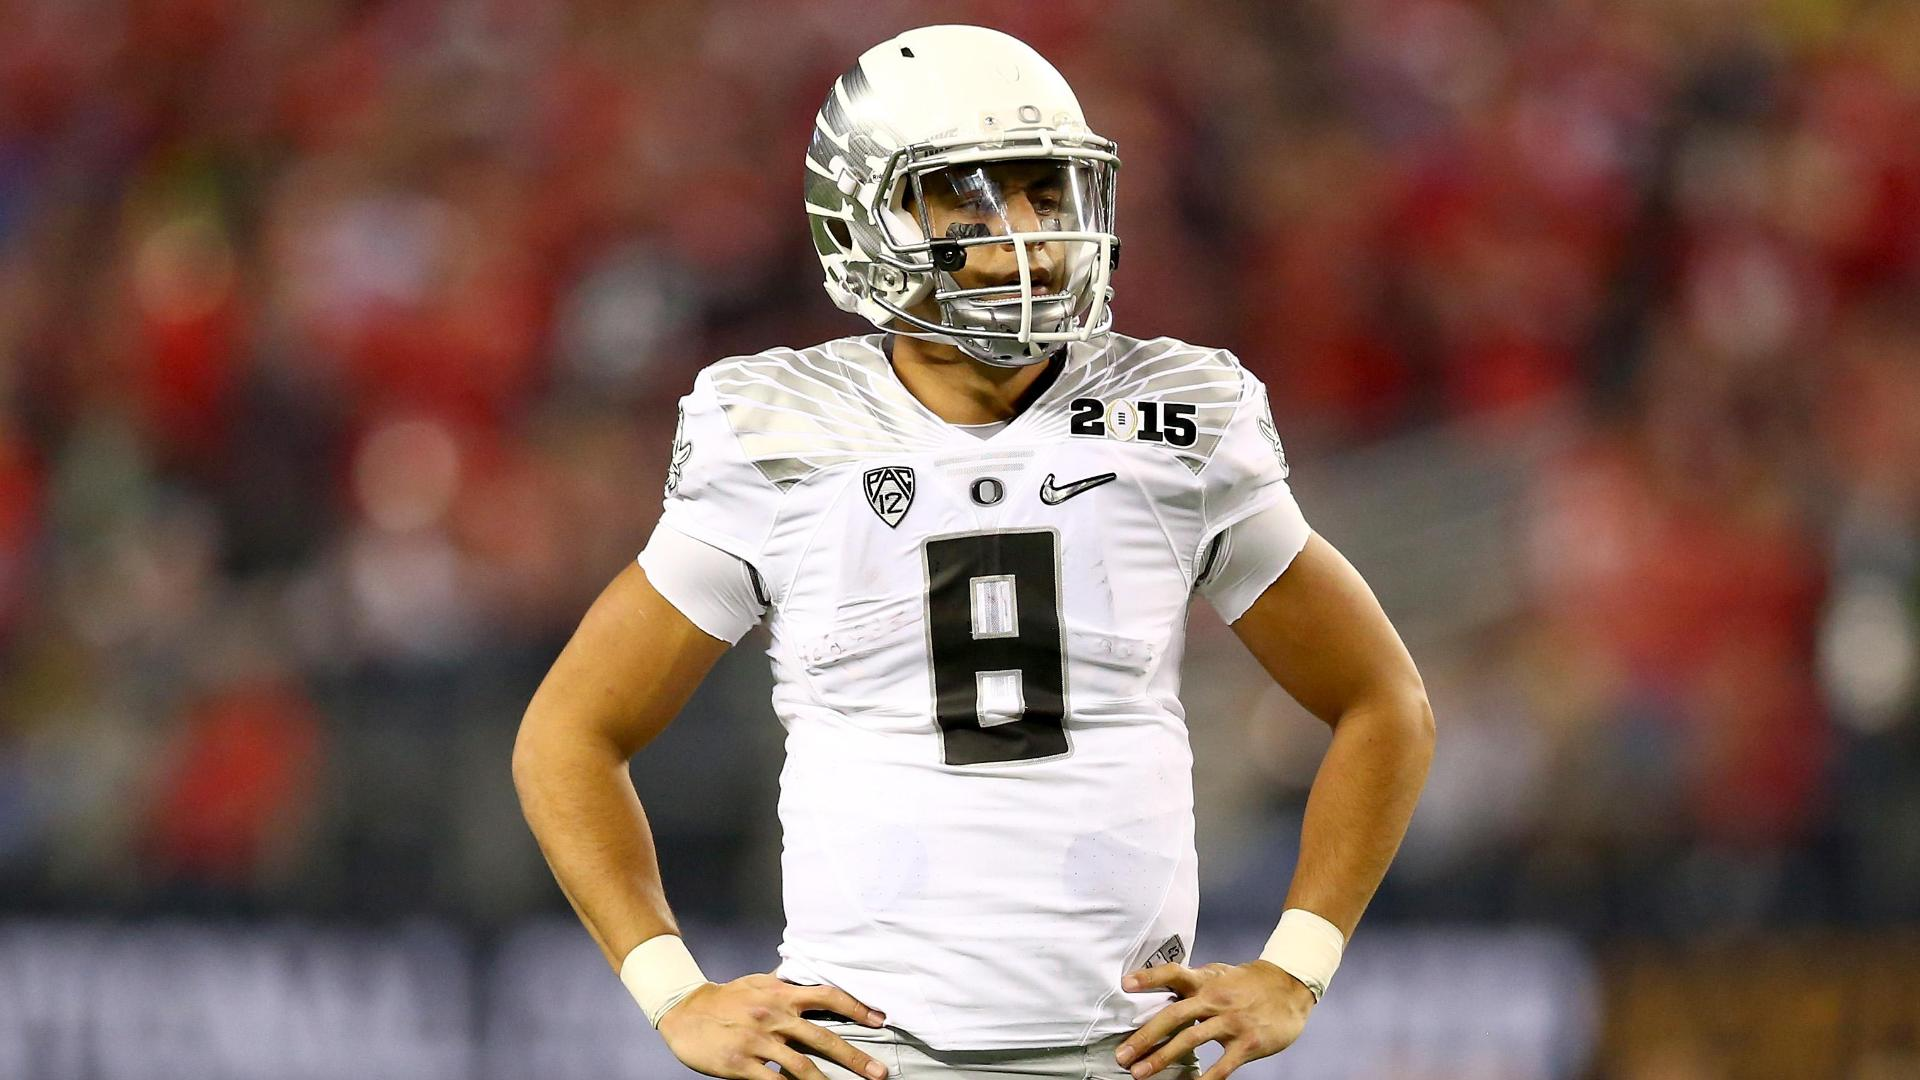 http://a.espncdn.com/media/motion/2015/0422/dm_150422_HIs_Hers_Mariota1058/dm_150422_HIs_Hers_Mariota1058.jpg